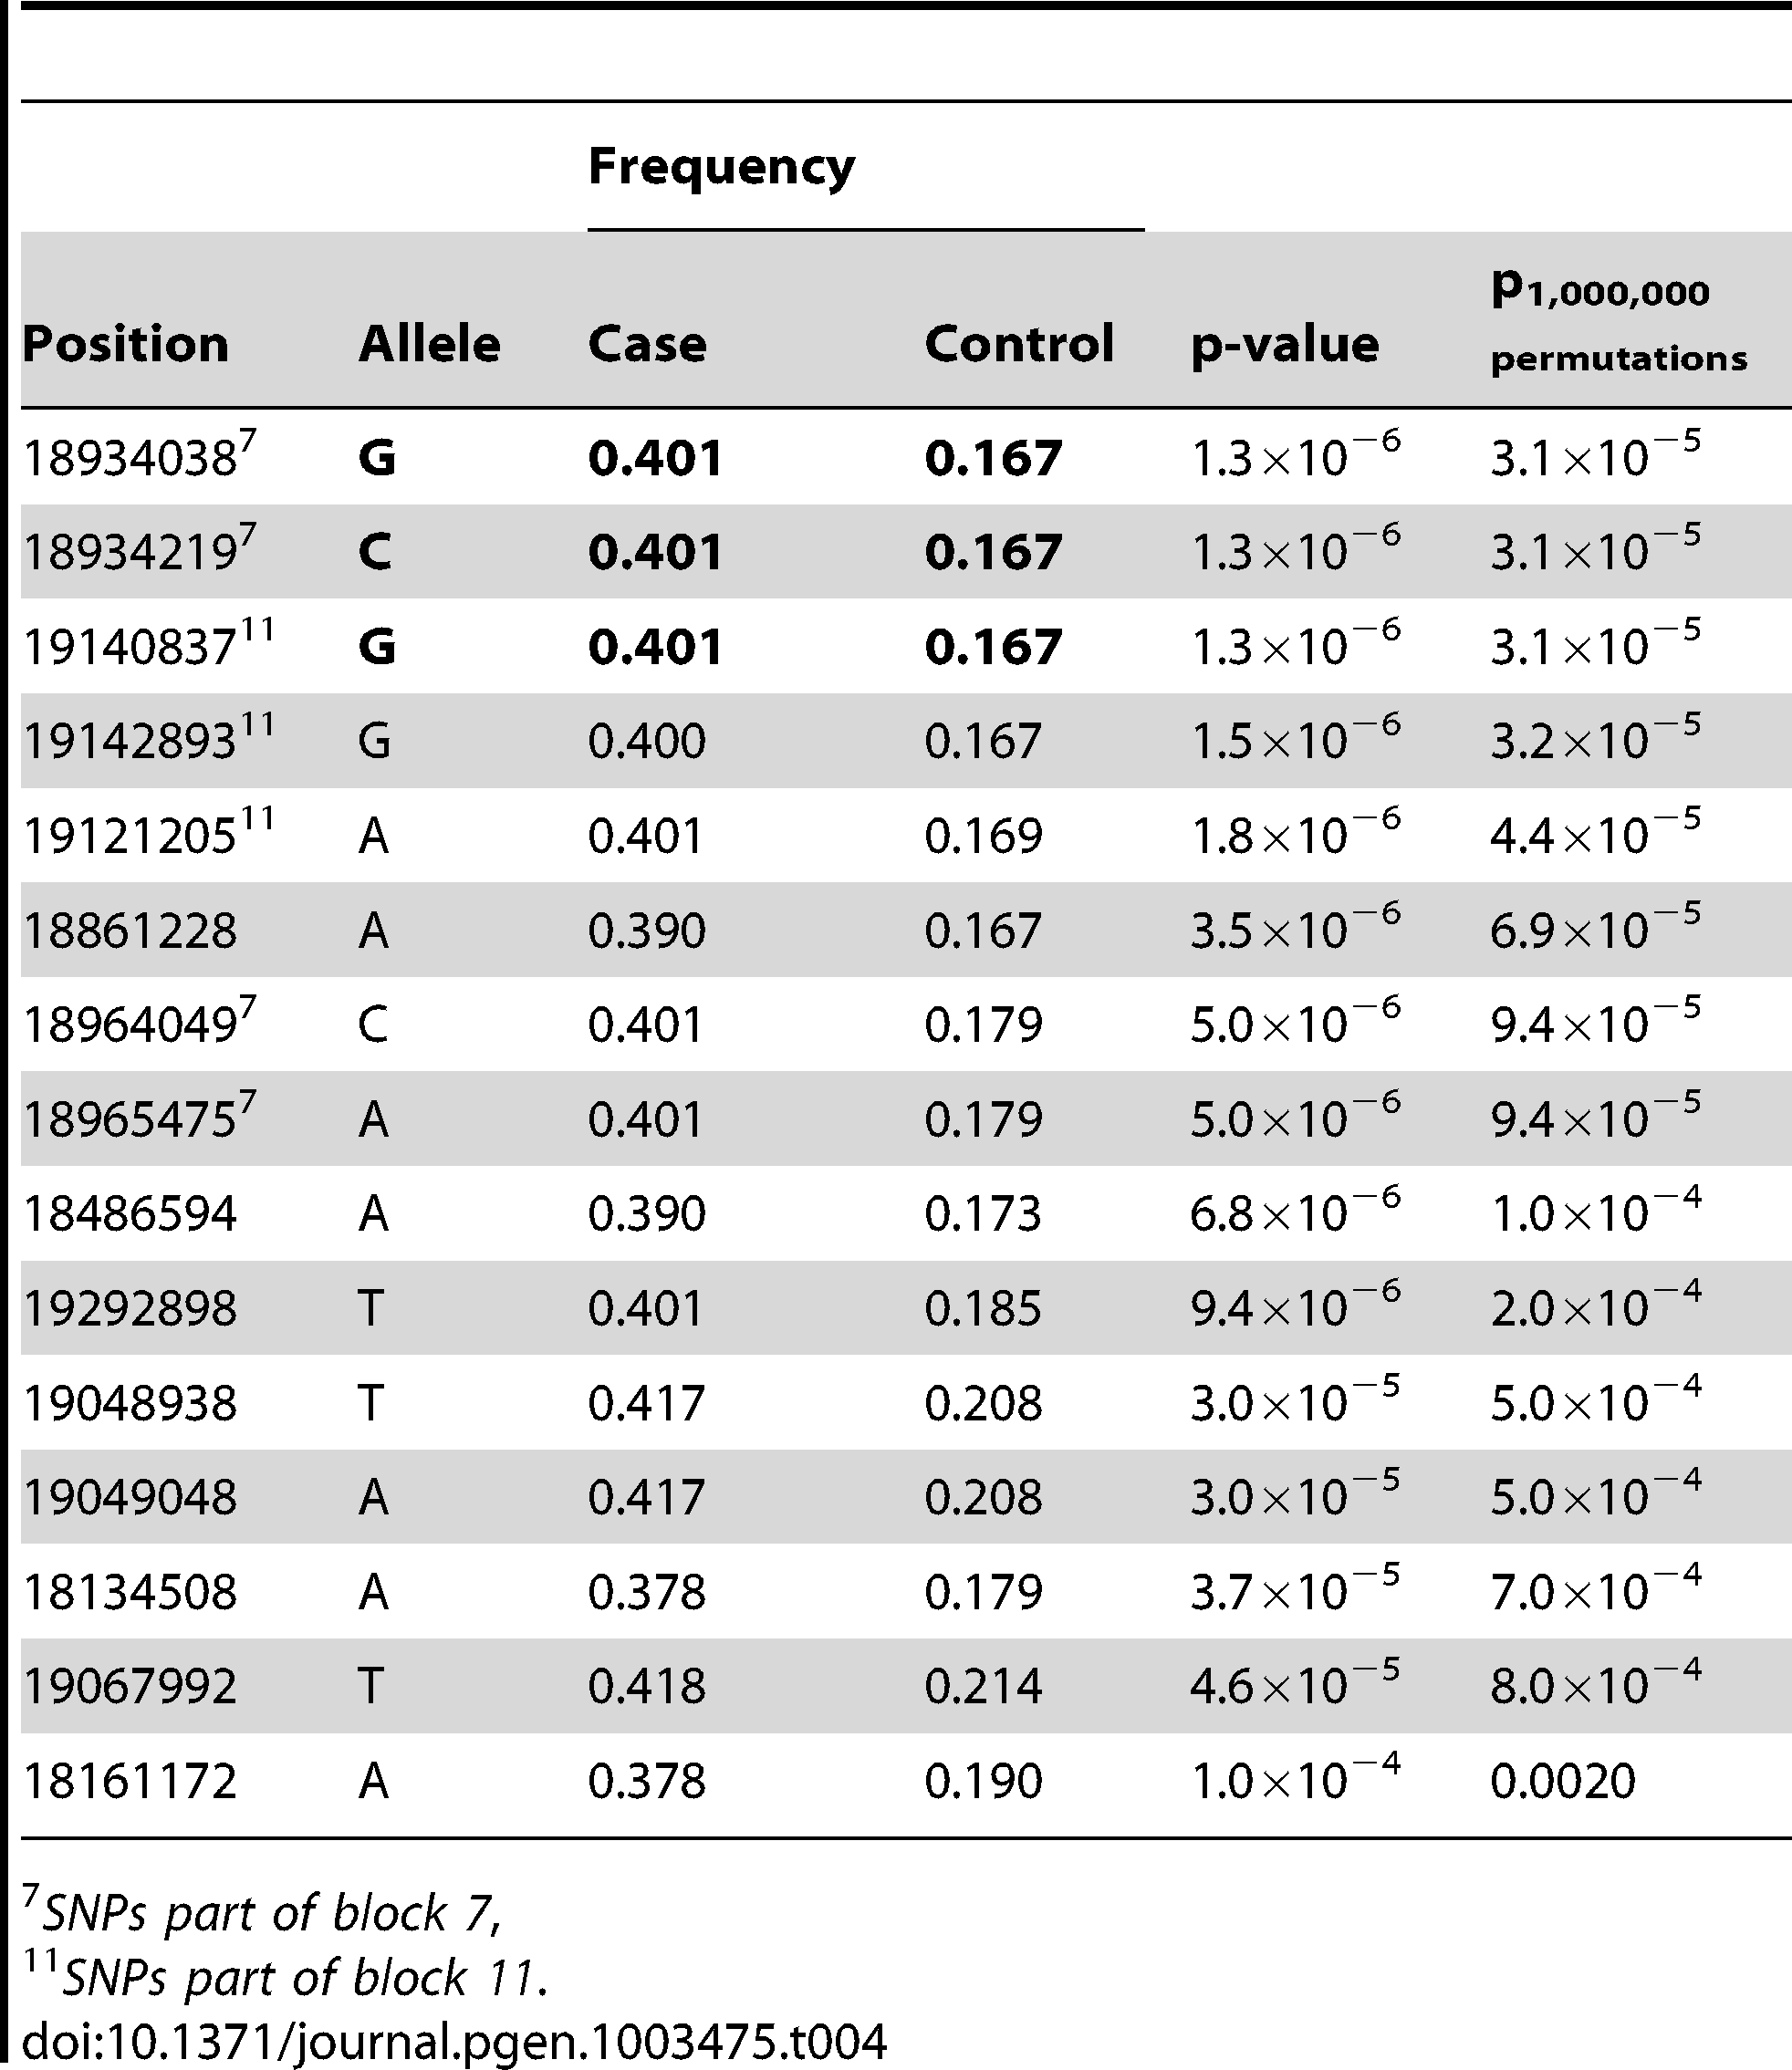 Top 15 SNP alleles from the association analysis of fine-mapping data.